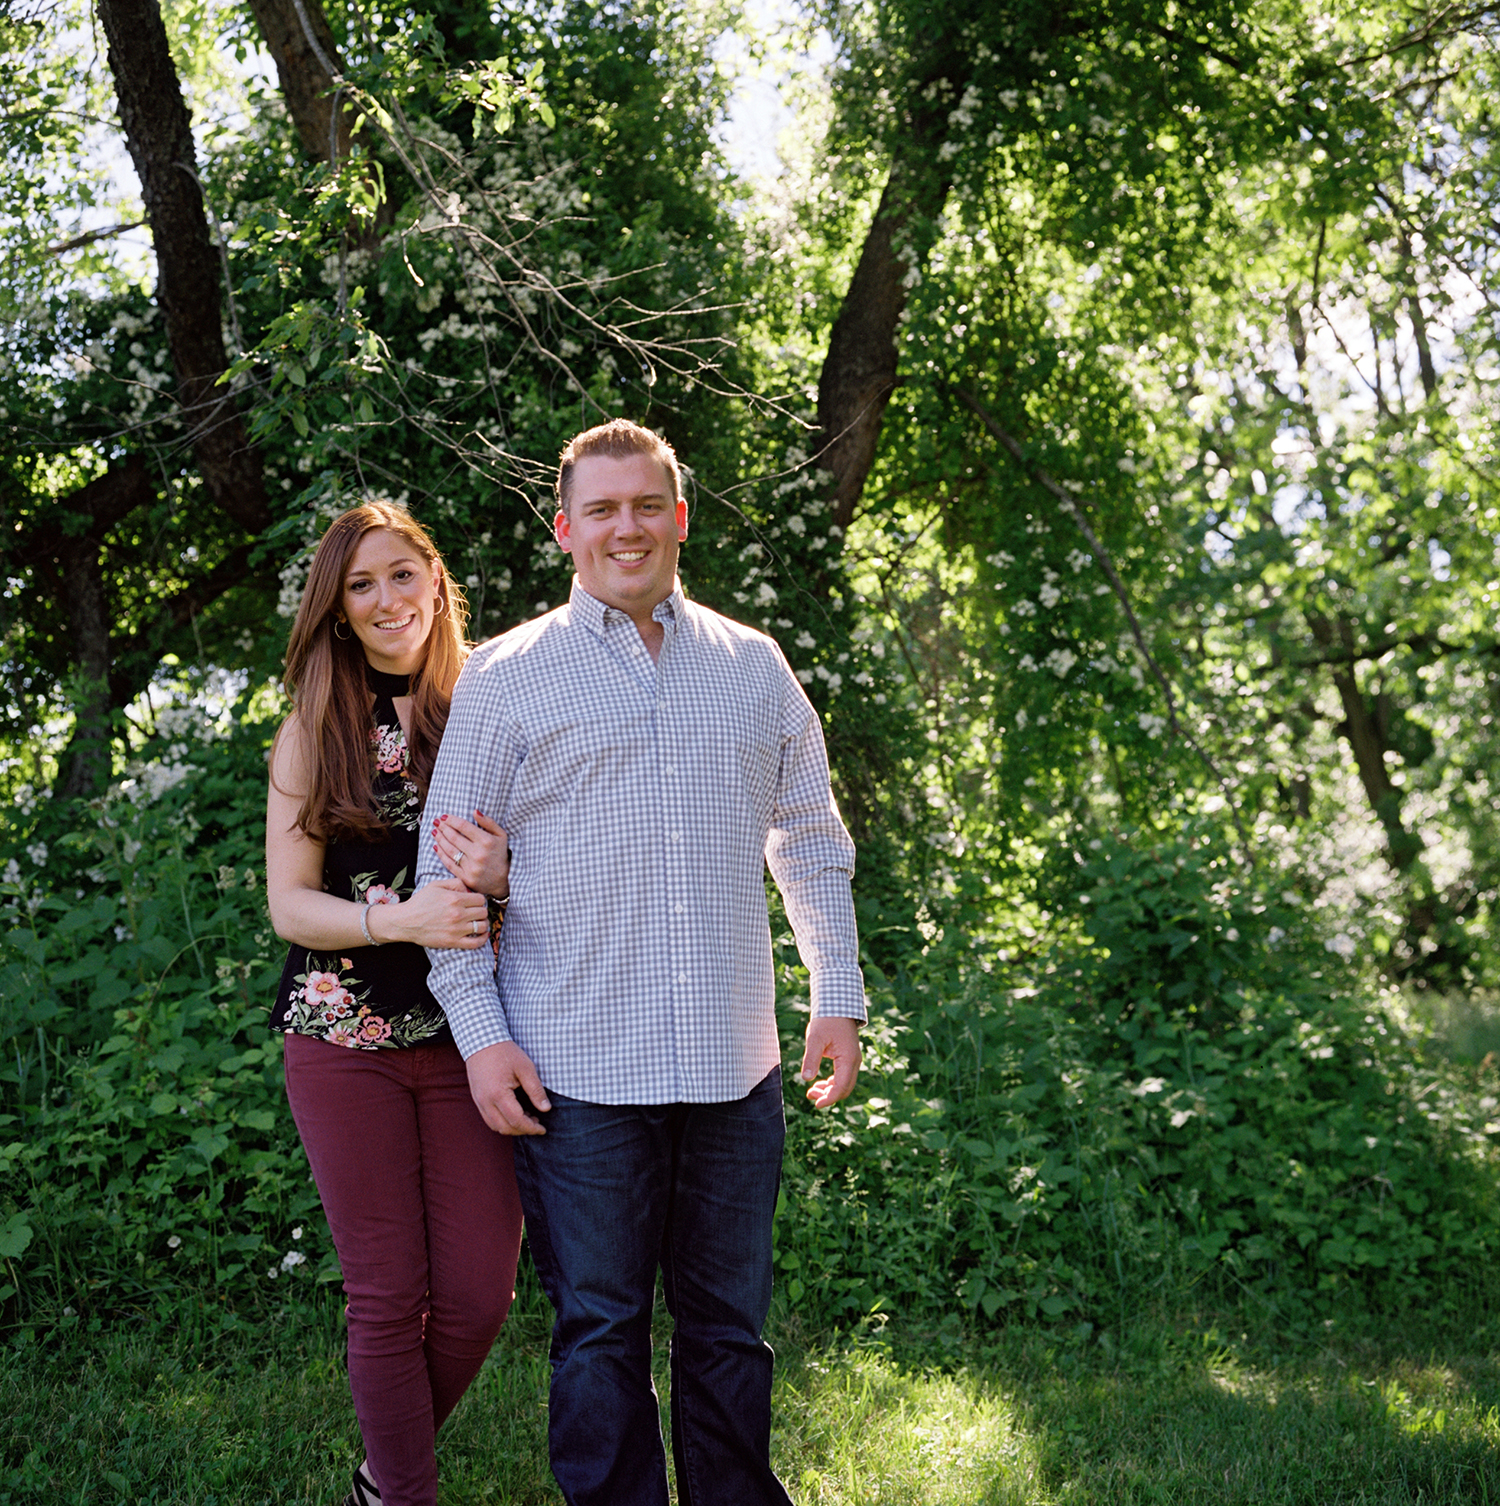 Lauren+AJ | Warwick Winery Engagement Session-Candid Photography- FILM- Olivia Christina Photography